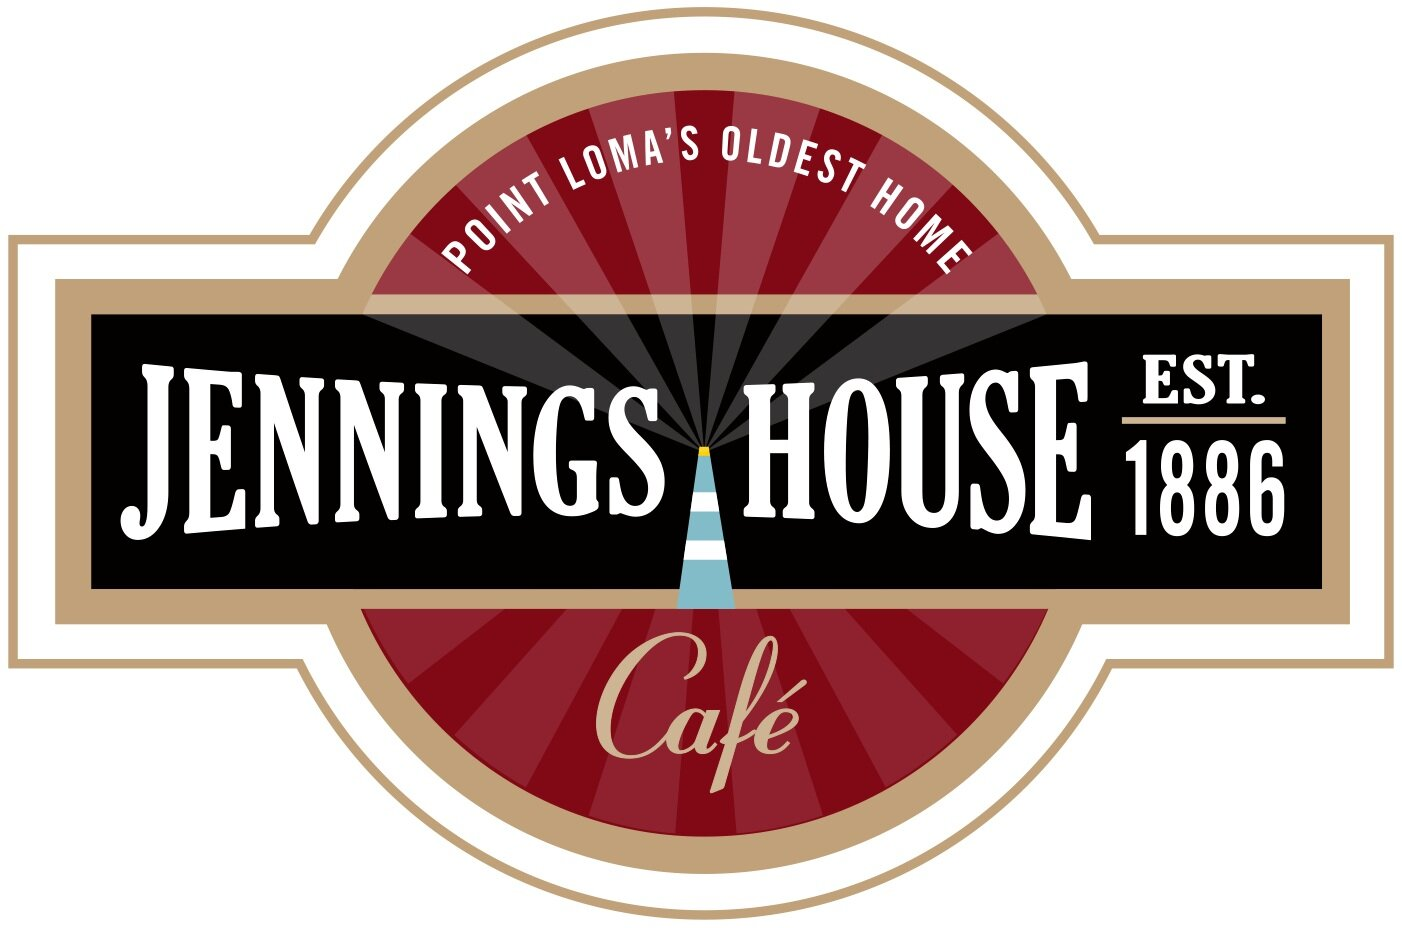 Jennings House Cafe